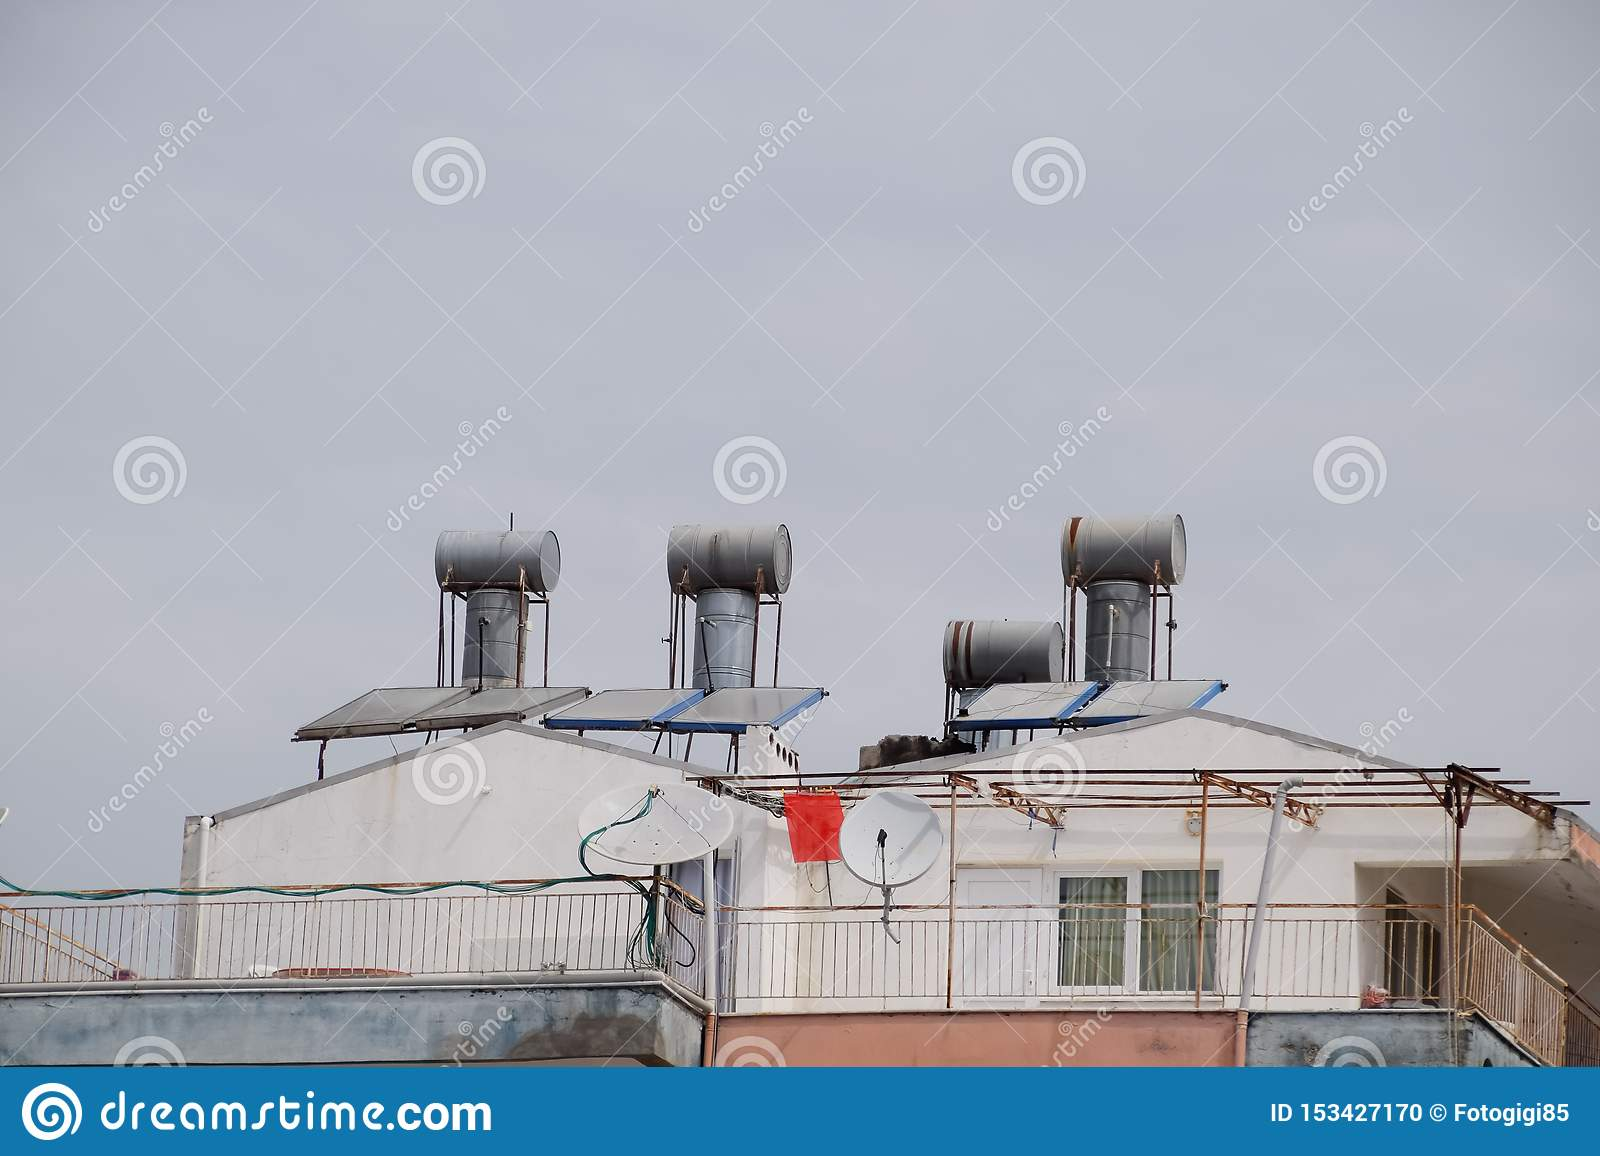 Steel barrels of boilers with water on the roof of a building to heat water